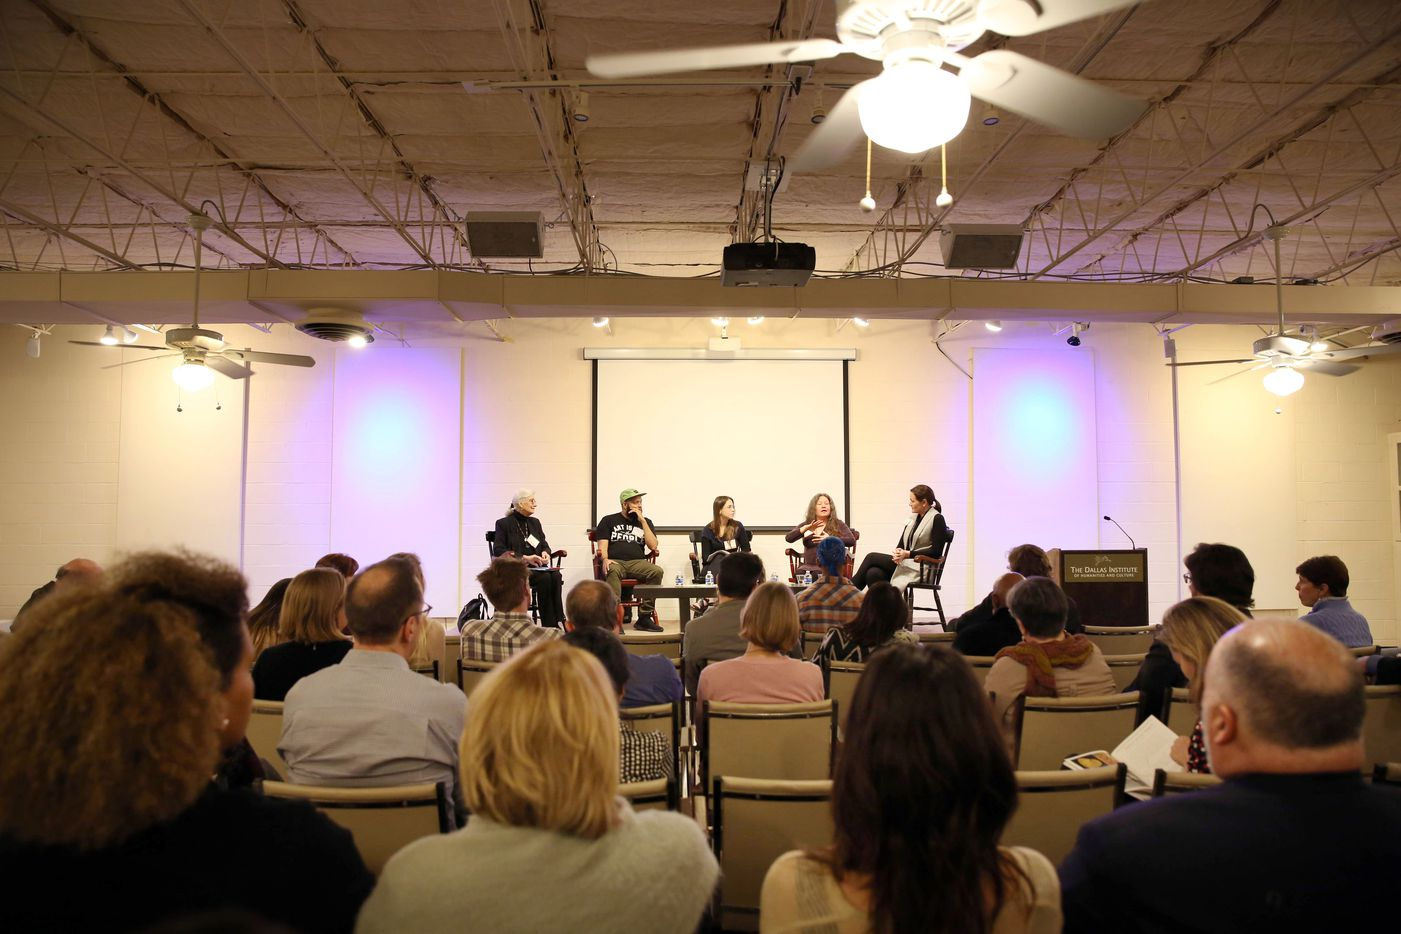 Dallas Festival of Ideas for the Cultural City Forum hosts a panel of community members to discuss culture and art at The Dallas Institute of Humanities and Culture in Dallas, Texas, Tuesday, February 21, 2017.